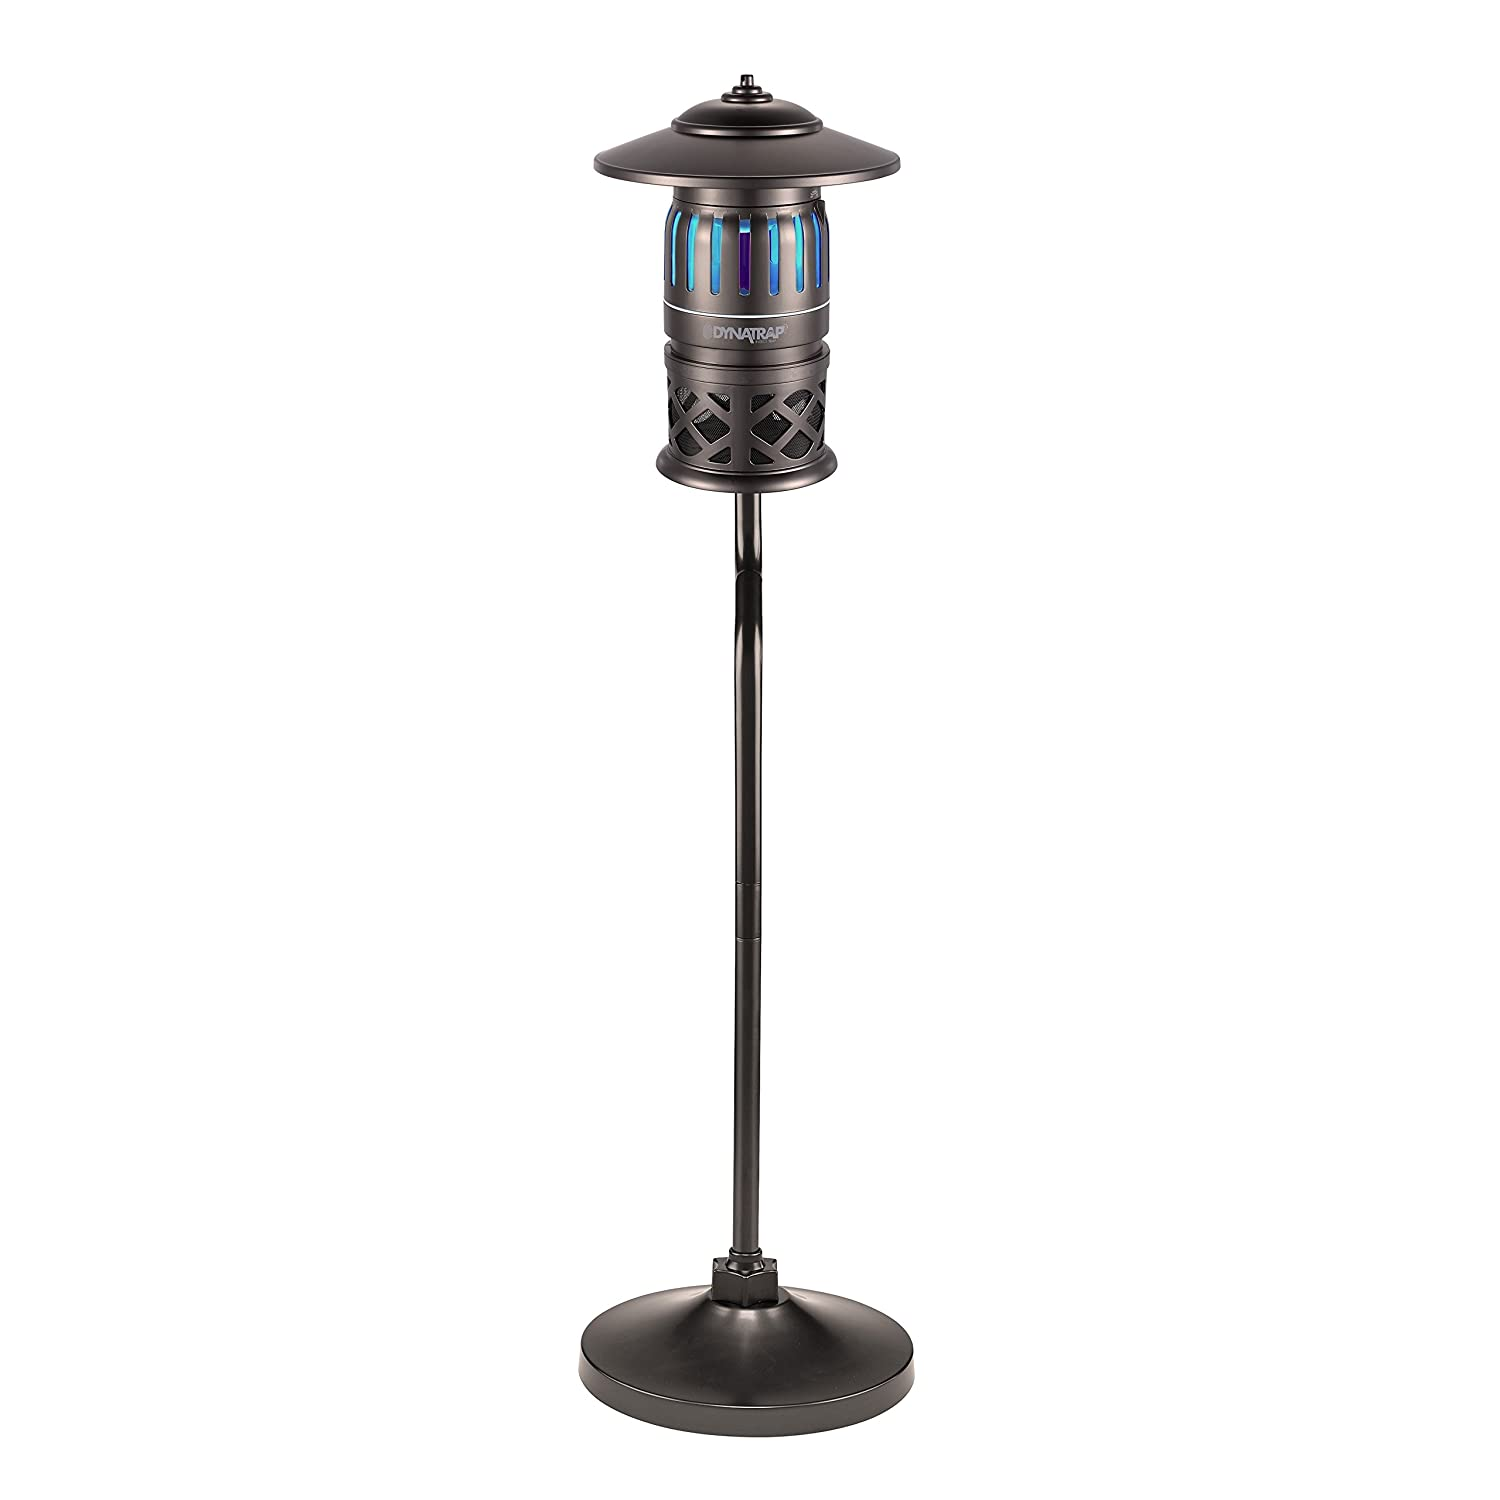 7. Dynatrap DT1260-TUN - Decora Series 1/2 Acre Insect Trap w/Pole Mount